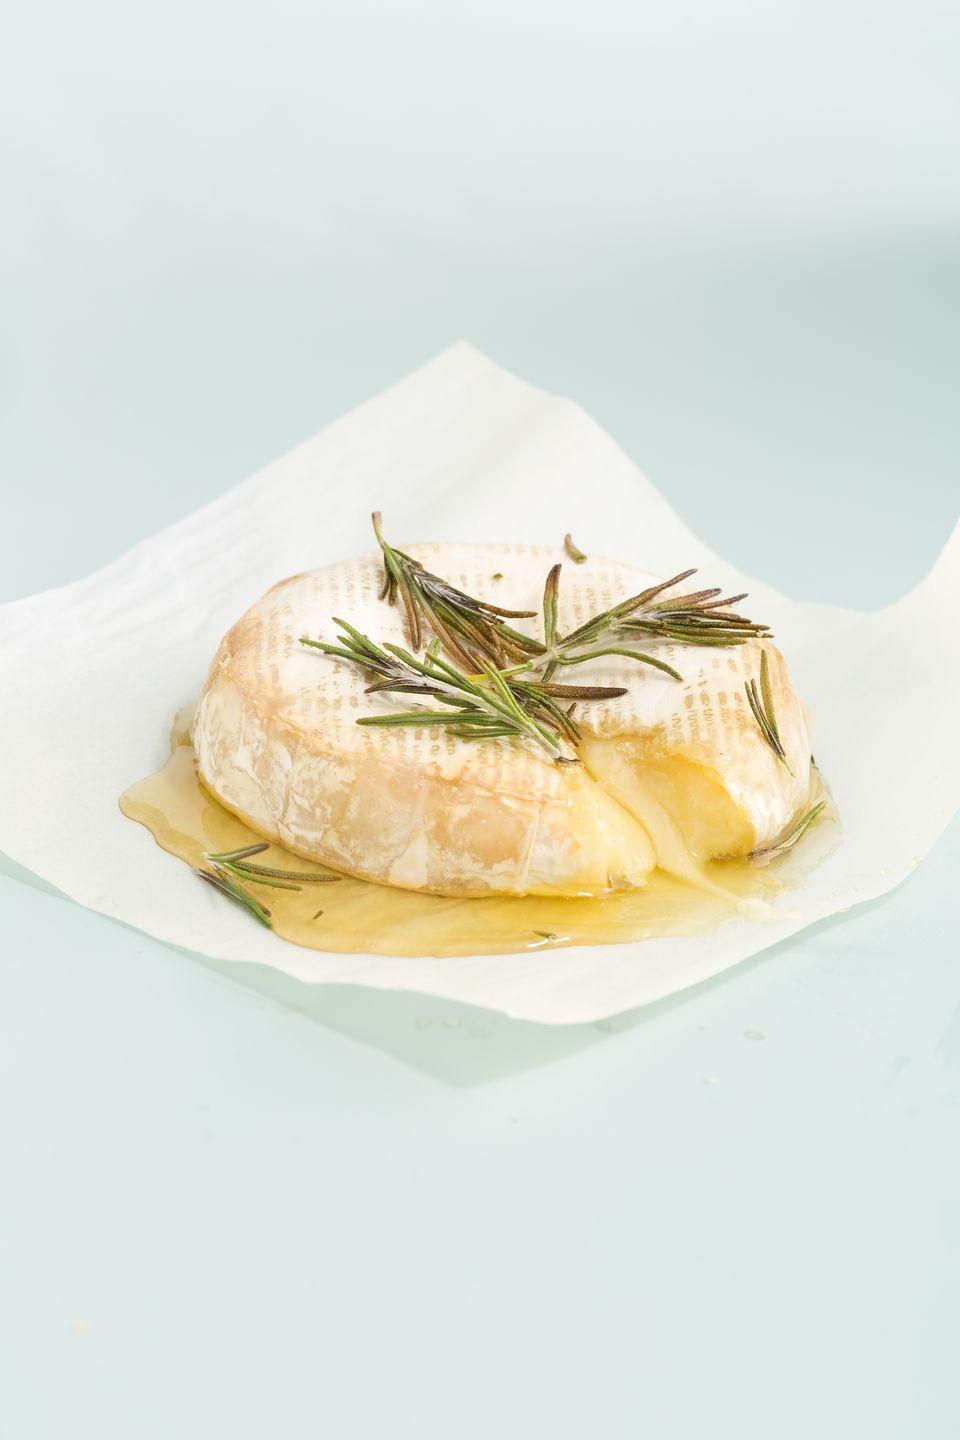 """<p>You really can't top melted, gooey cheese.</p><p>Get the recipe from <a href=""""https://www.delish.com/cooking/recipe-ideas/recipes/a44697/baked-brie-honey-rosemary/"""" rel=""""nofollow noopener"""" target=""""_blank"""" data-ylk=""""slk:Delish"""" class=""""link rapid-noclick-resp"""">Delish</a>.</p>"""